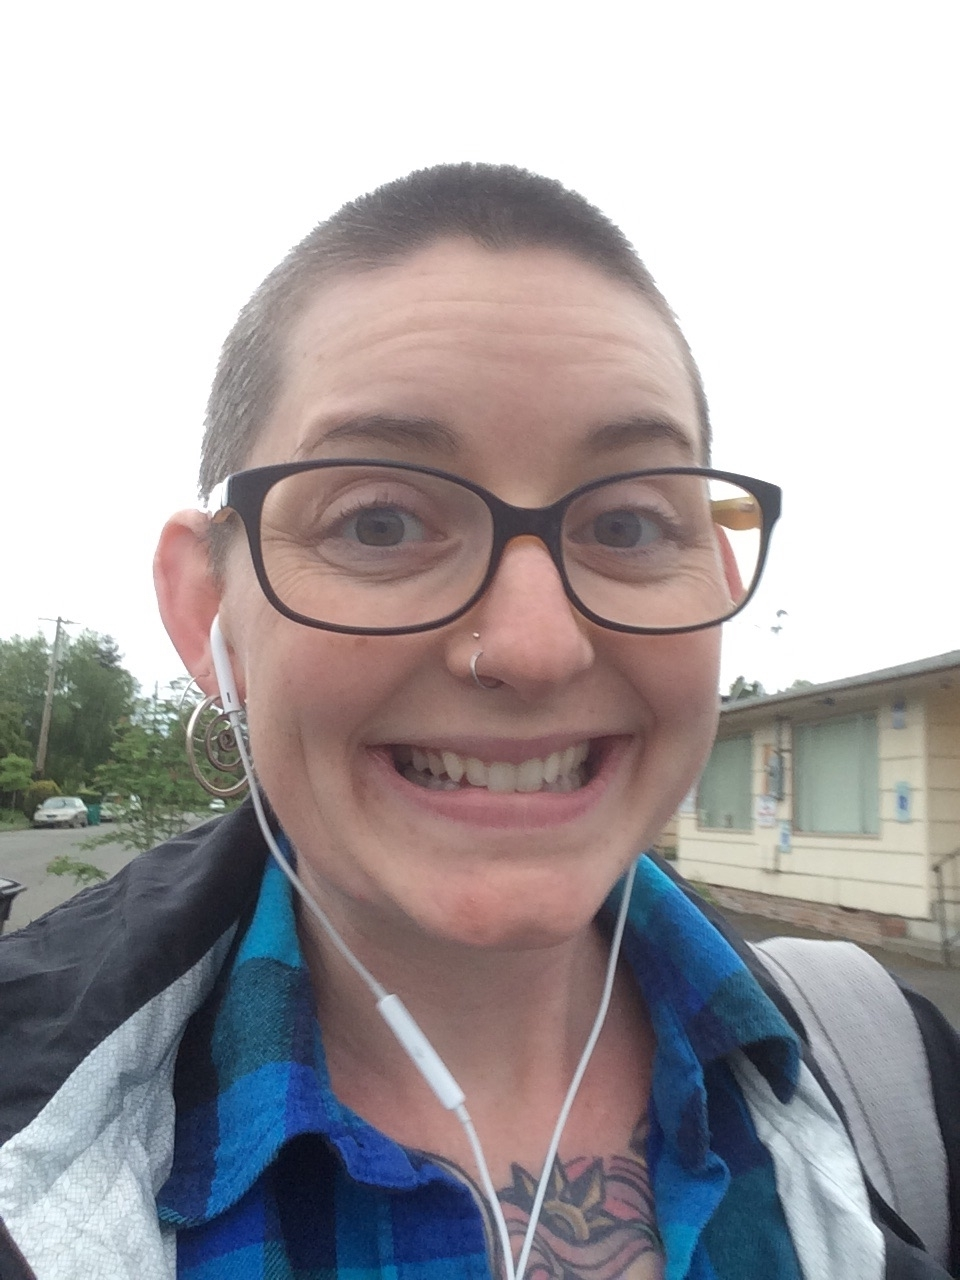 And of course, the face of the researcher. I shaved my head to support my niece after she had brain surgery!